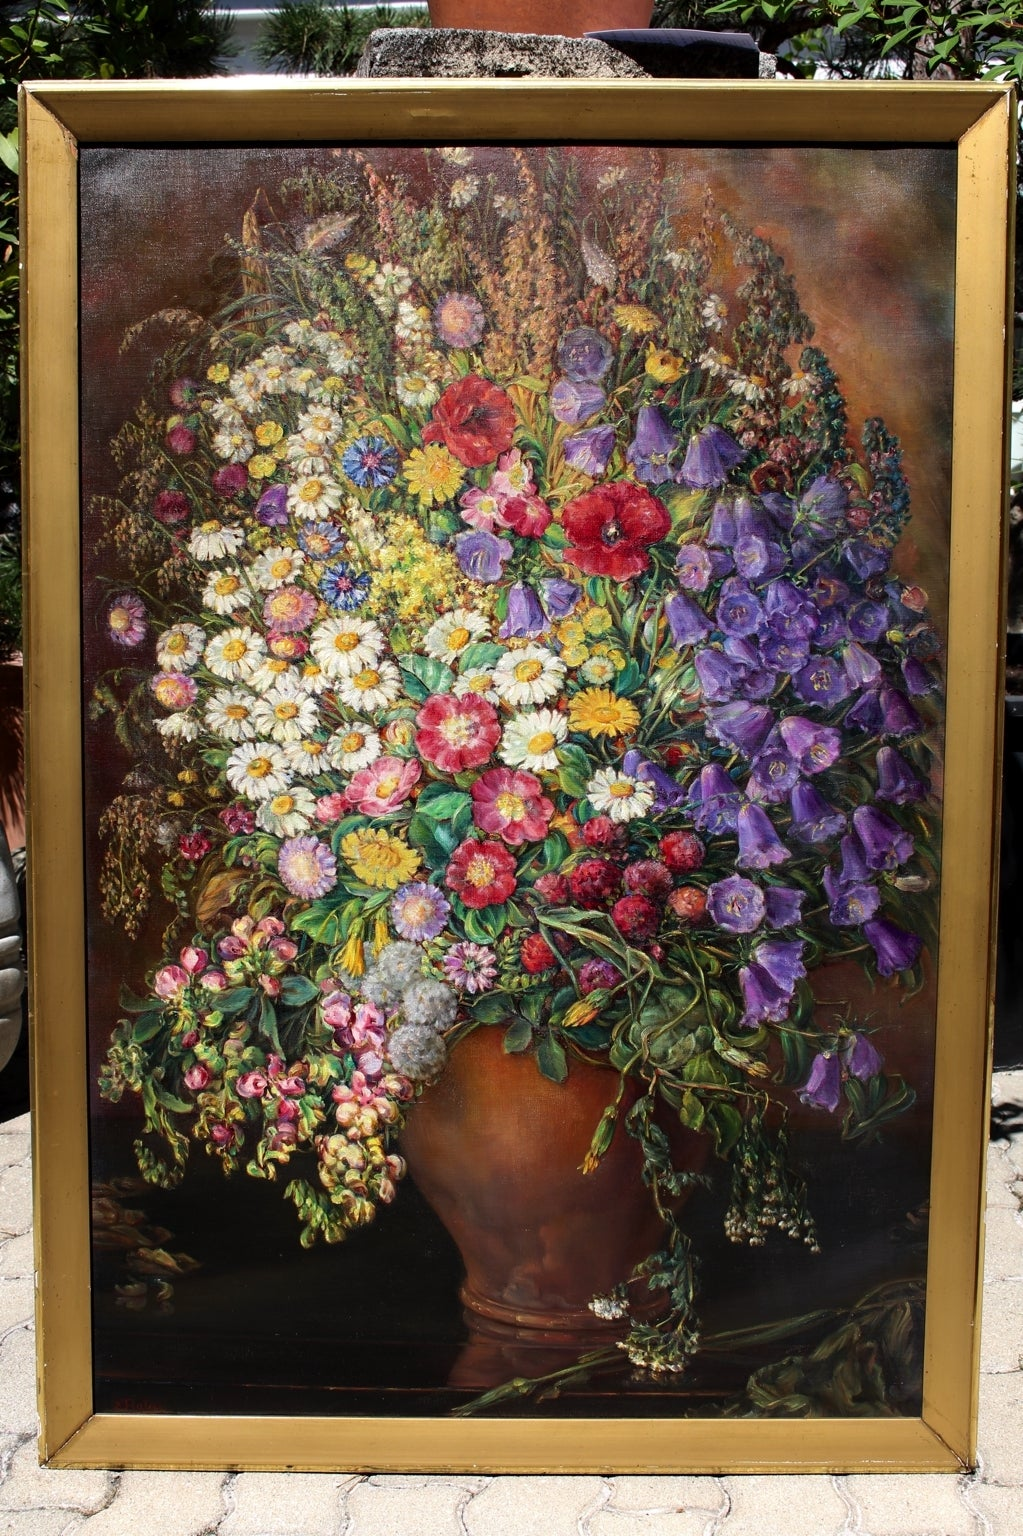 Wonderful painting by Emil Fiala from 1933, Vienna, with the motif of Field Flowers from the surroundings of Vienna. The motif of the field flowers had been painted so realistic, that it is possible to smell the flowers. Emil Fiala (1869 Prossnitz,